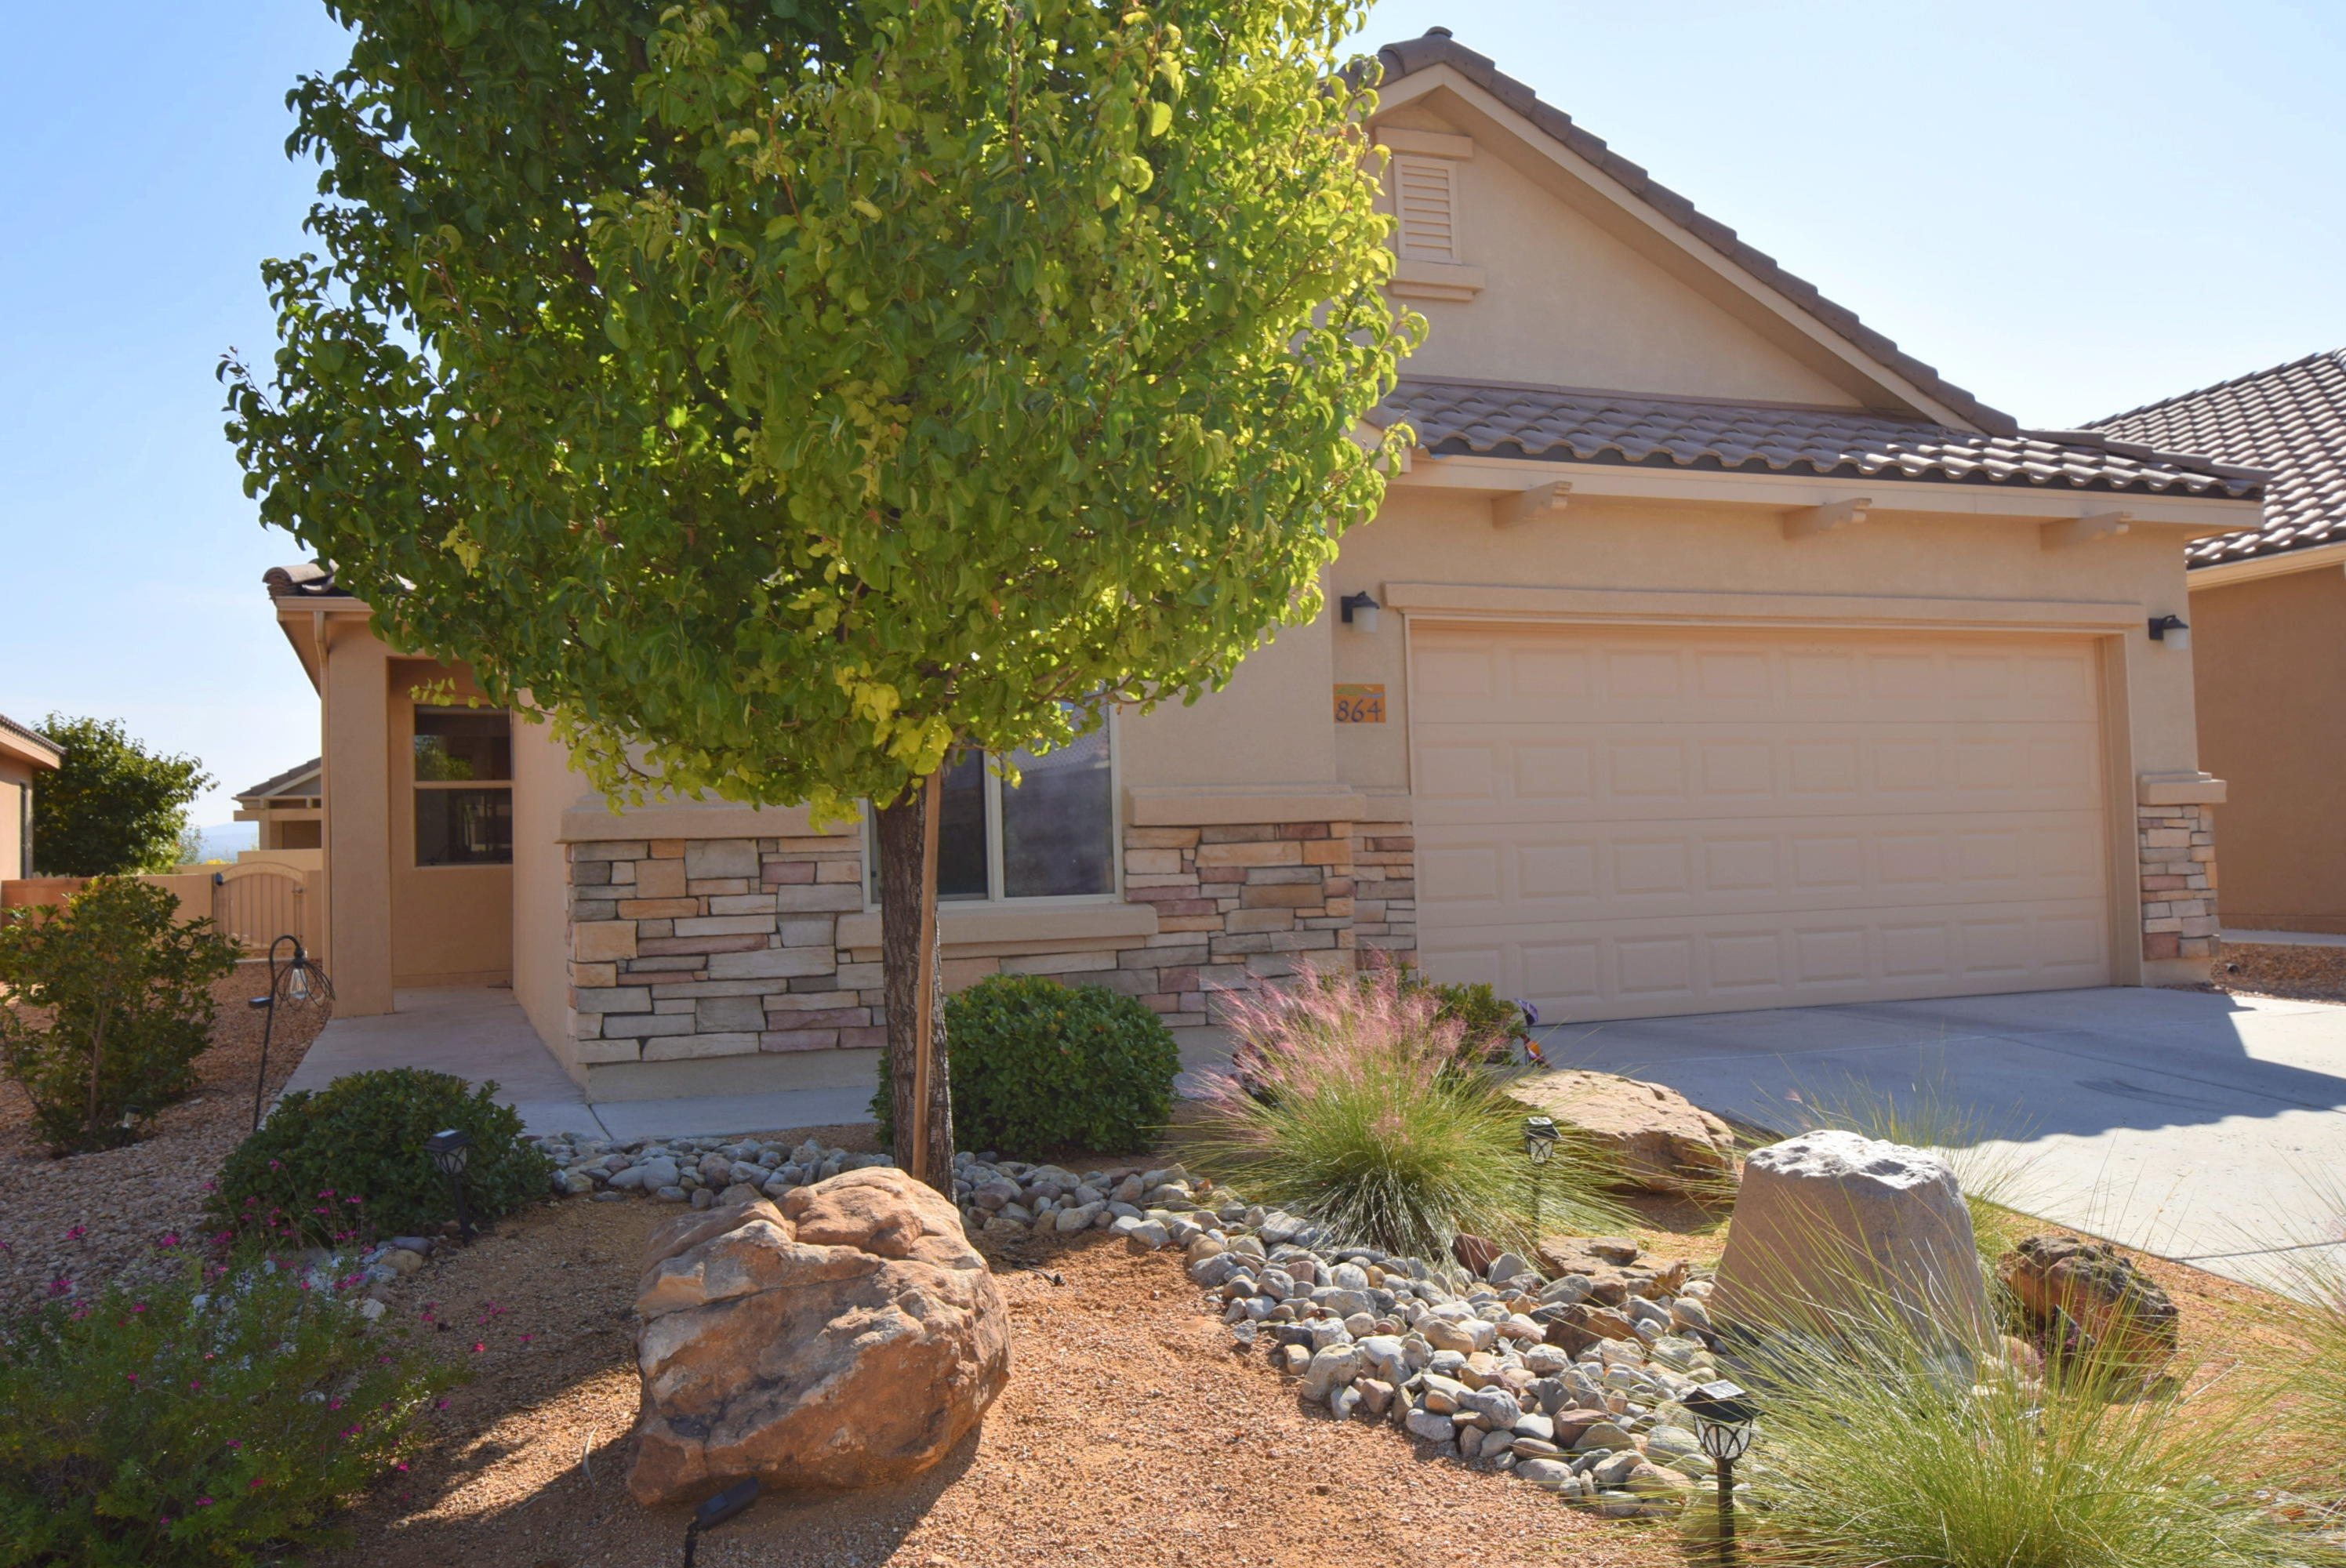 864 GOLDEN YARROW Trail Property Photo - Bernalillo, NM real estate listing